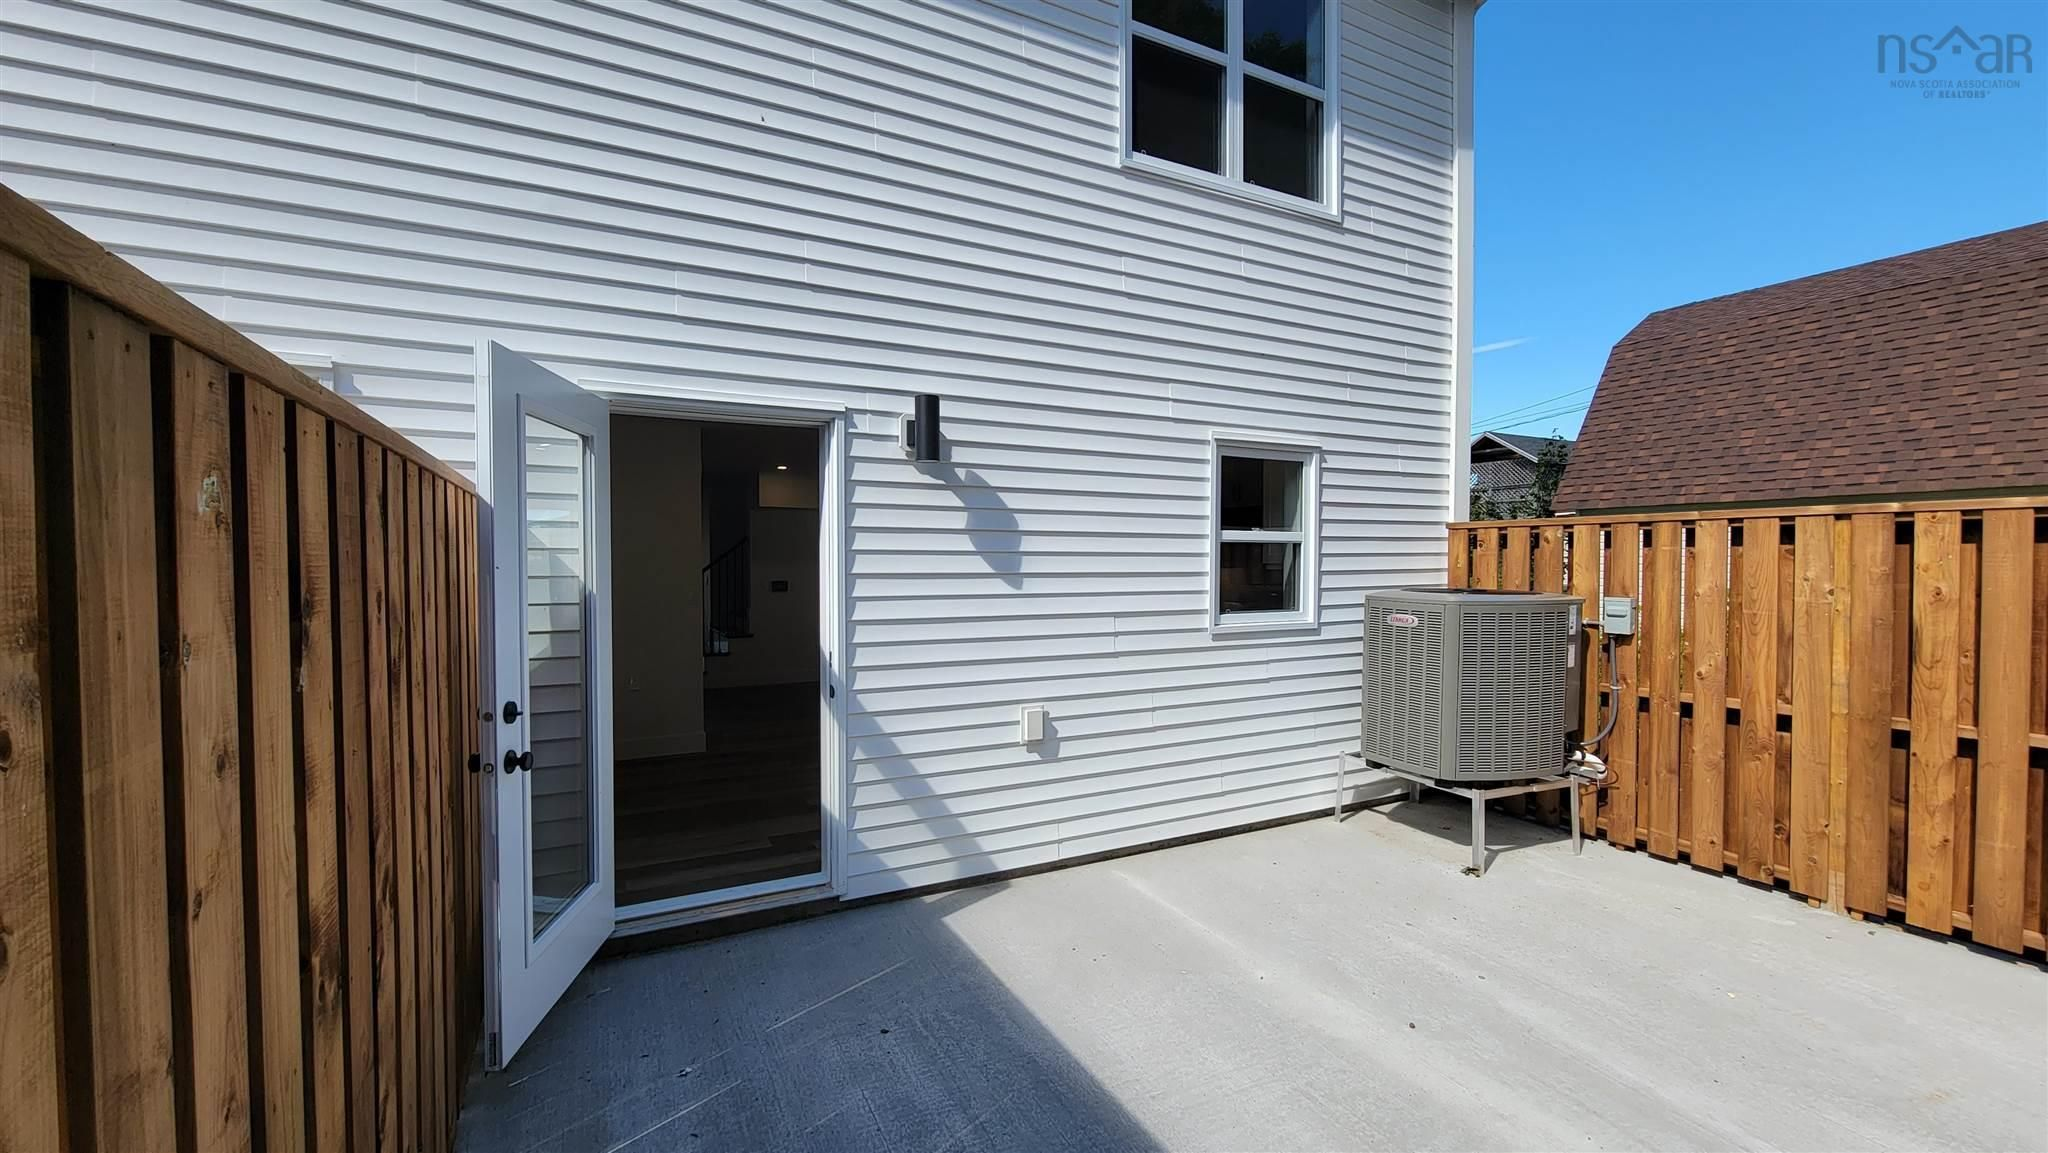 Photo 5: Photos: 17 Turner Drive in New Minas: 404-Kings County Residential for sale (Annapolis Valley)  : MLS®# 202123665